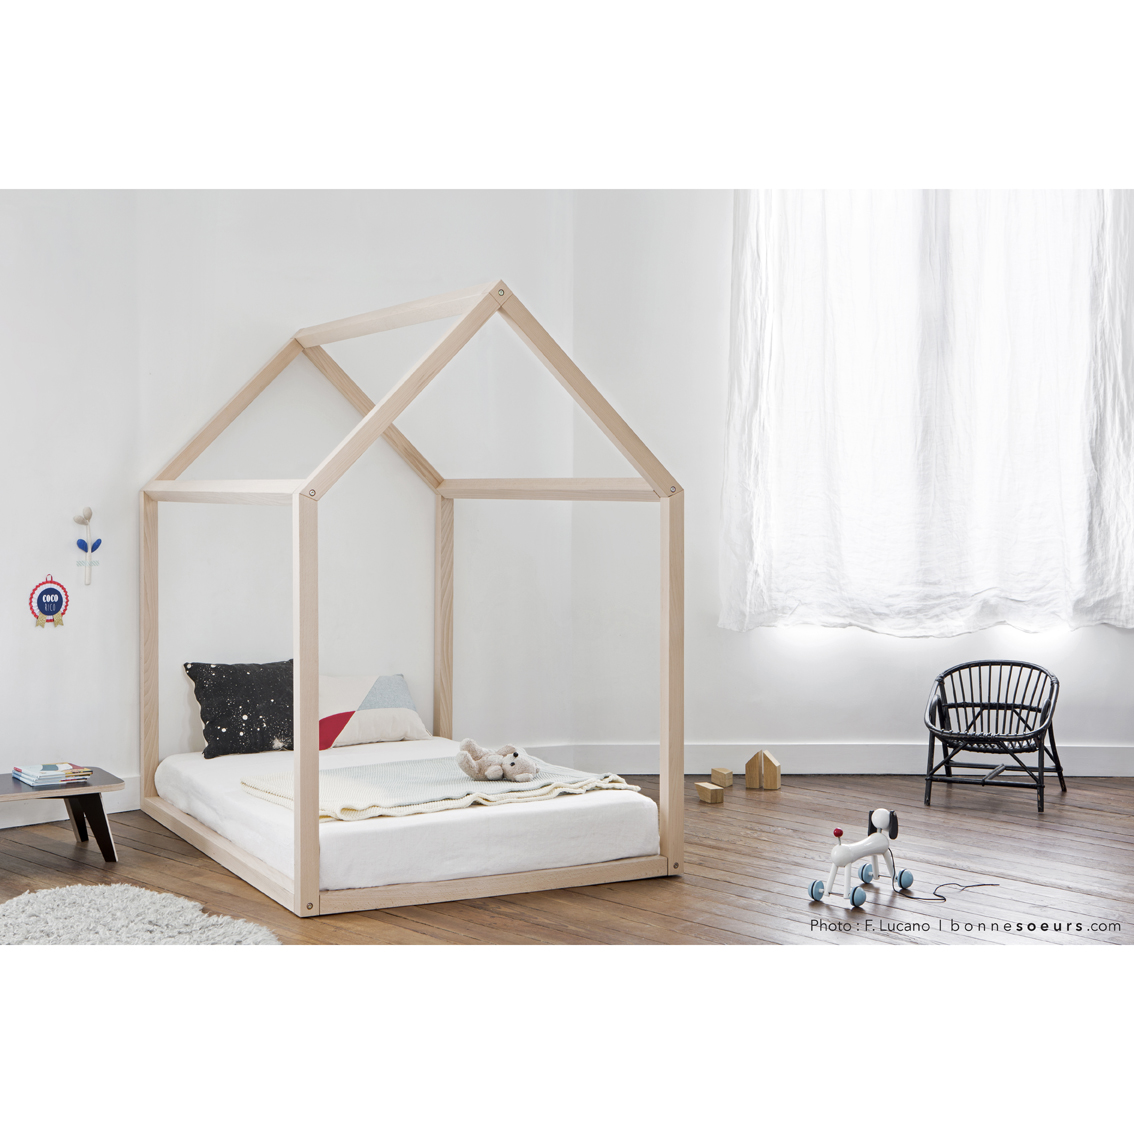 Lit bebe maison for Les enfants design